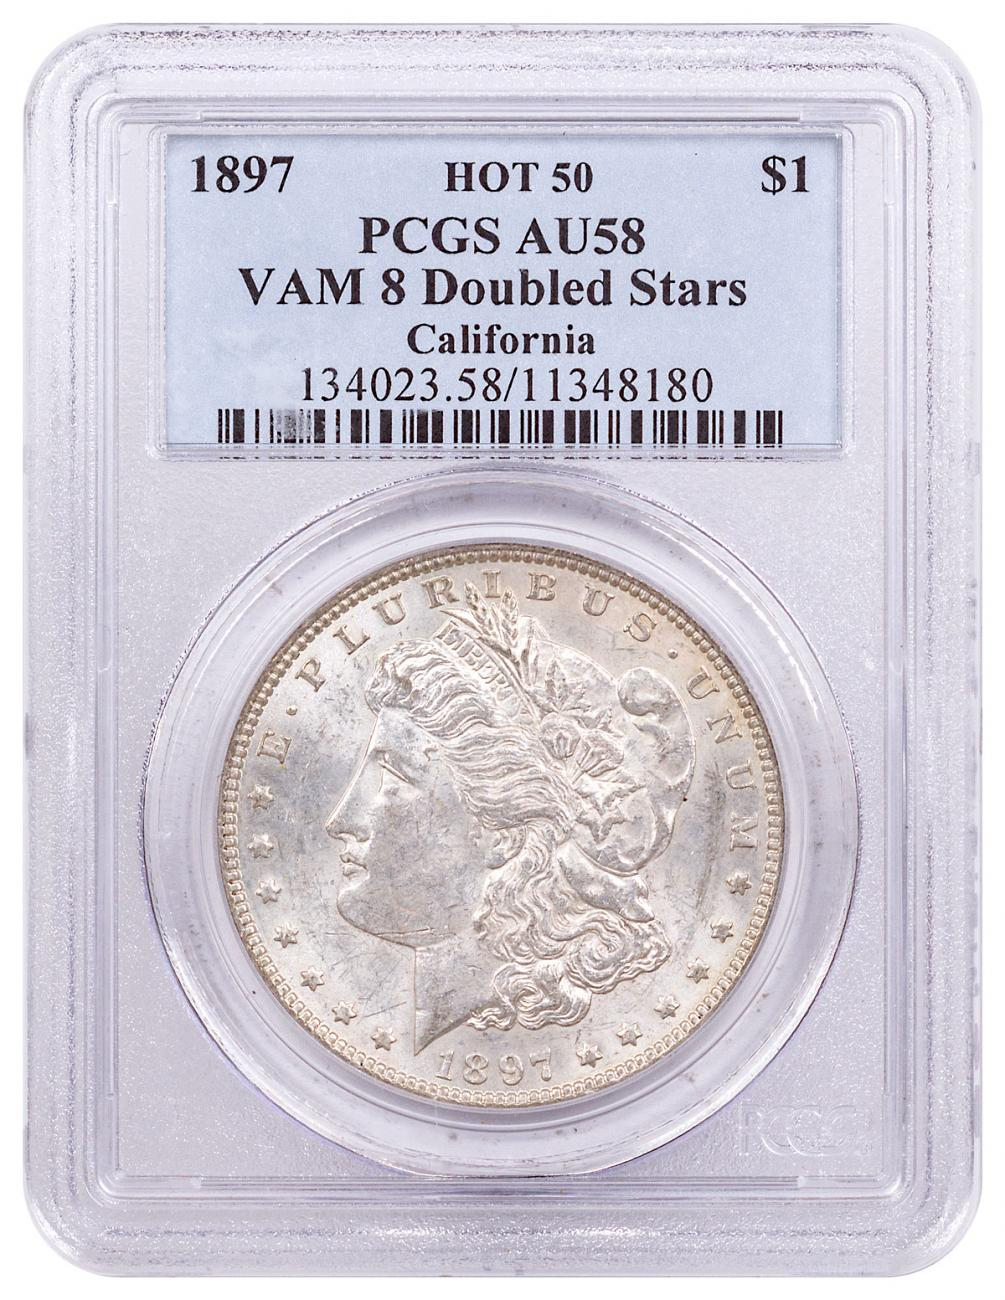 1897 Morgan Silver Dollar Hot 50 PCGS AU58 VAM-8 Doubled Stars California